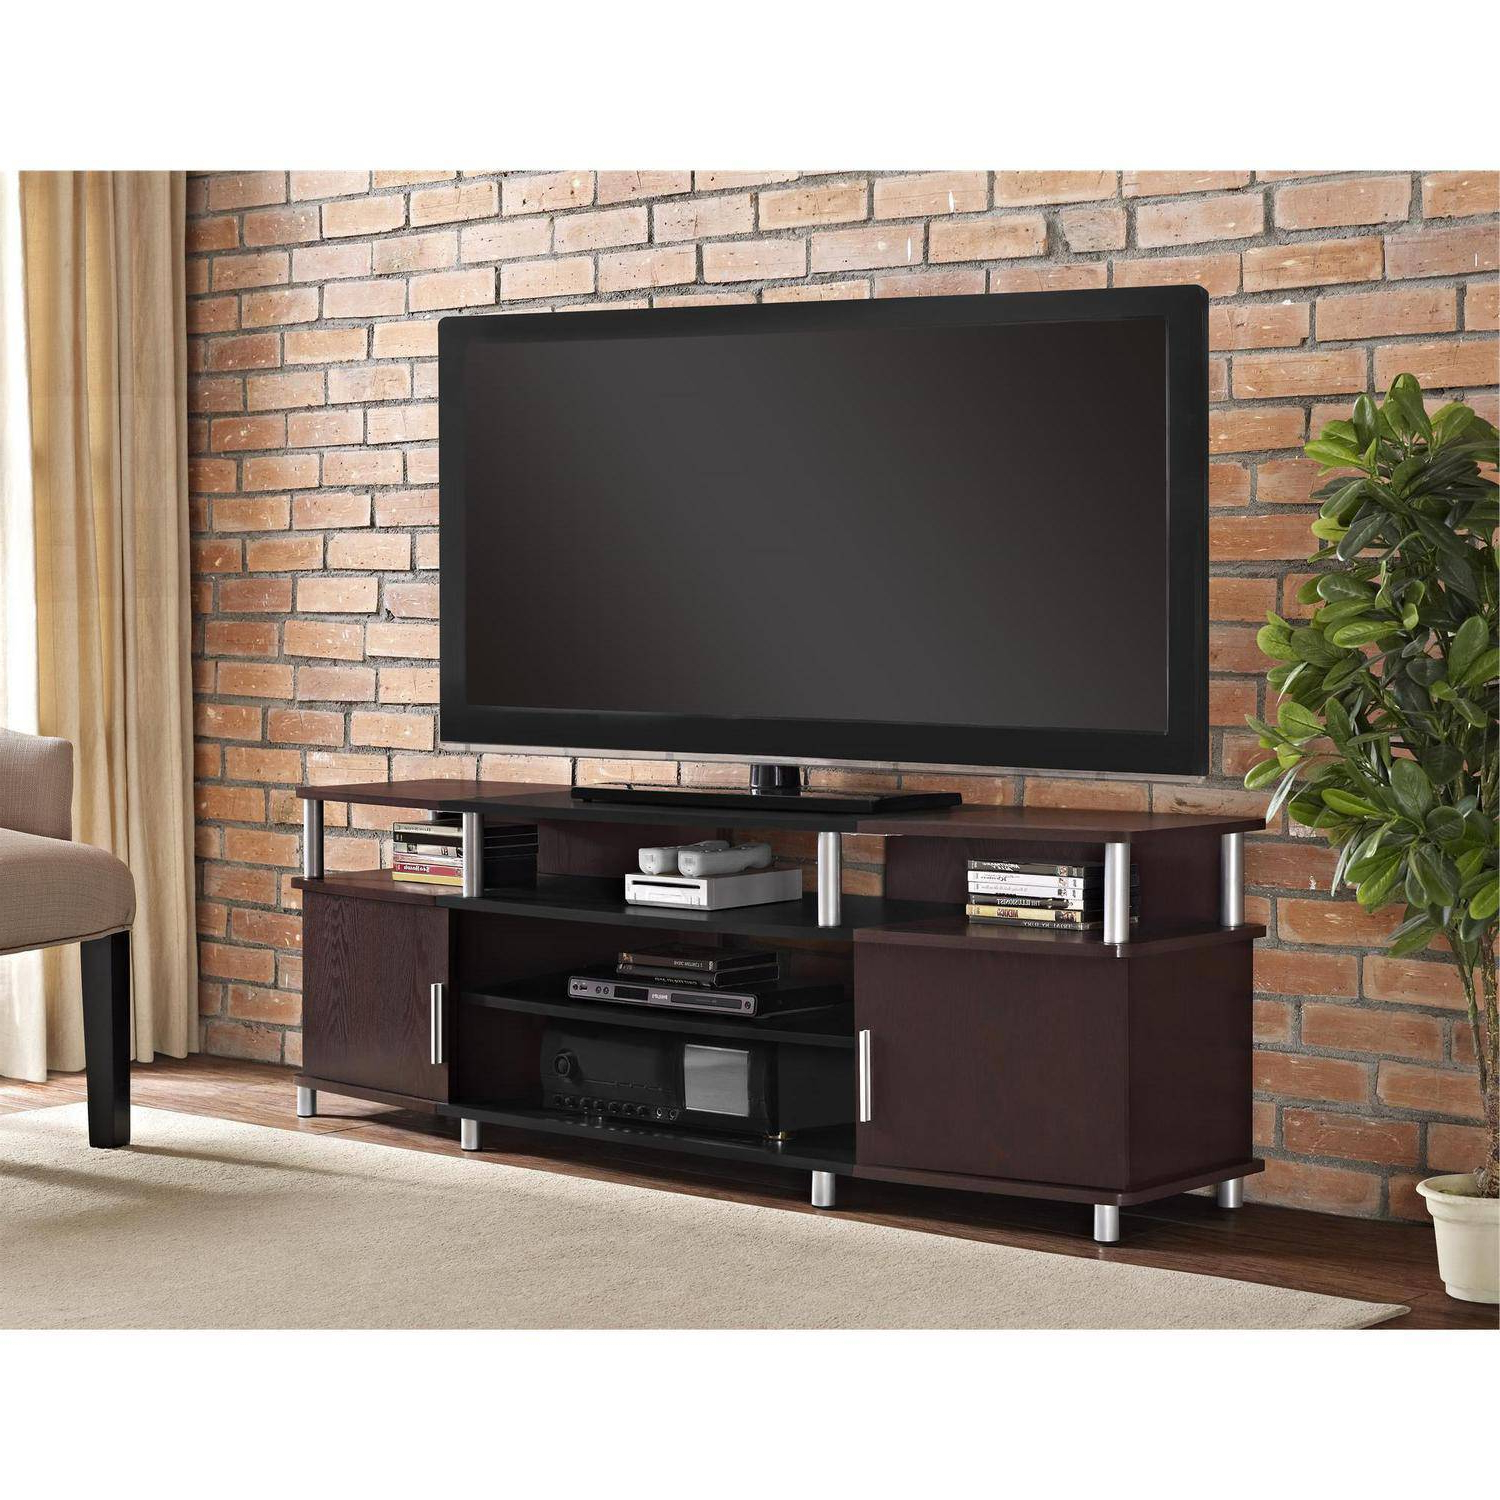 Annabelle Black 70 Inch Tv Stands With Regard To Well Liked Furniture: Ameriwood Home Carson Tv Stand For Tvs Up To 70 Inch Tv Stand (View 3 of 20)